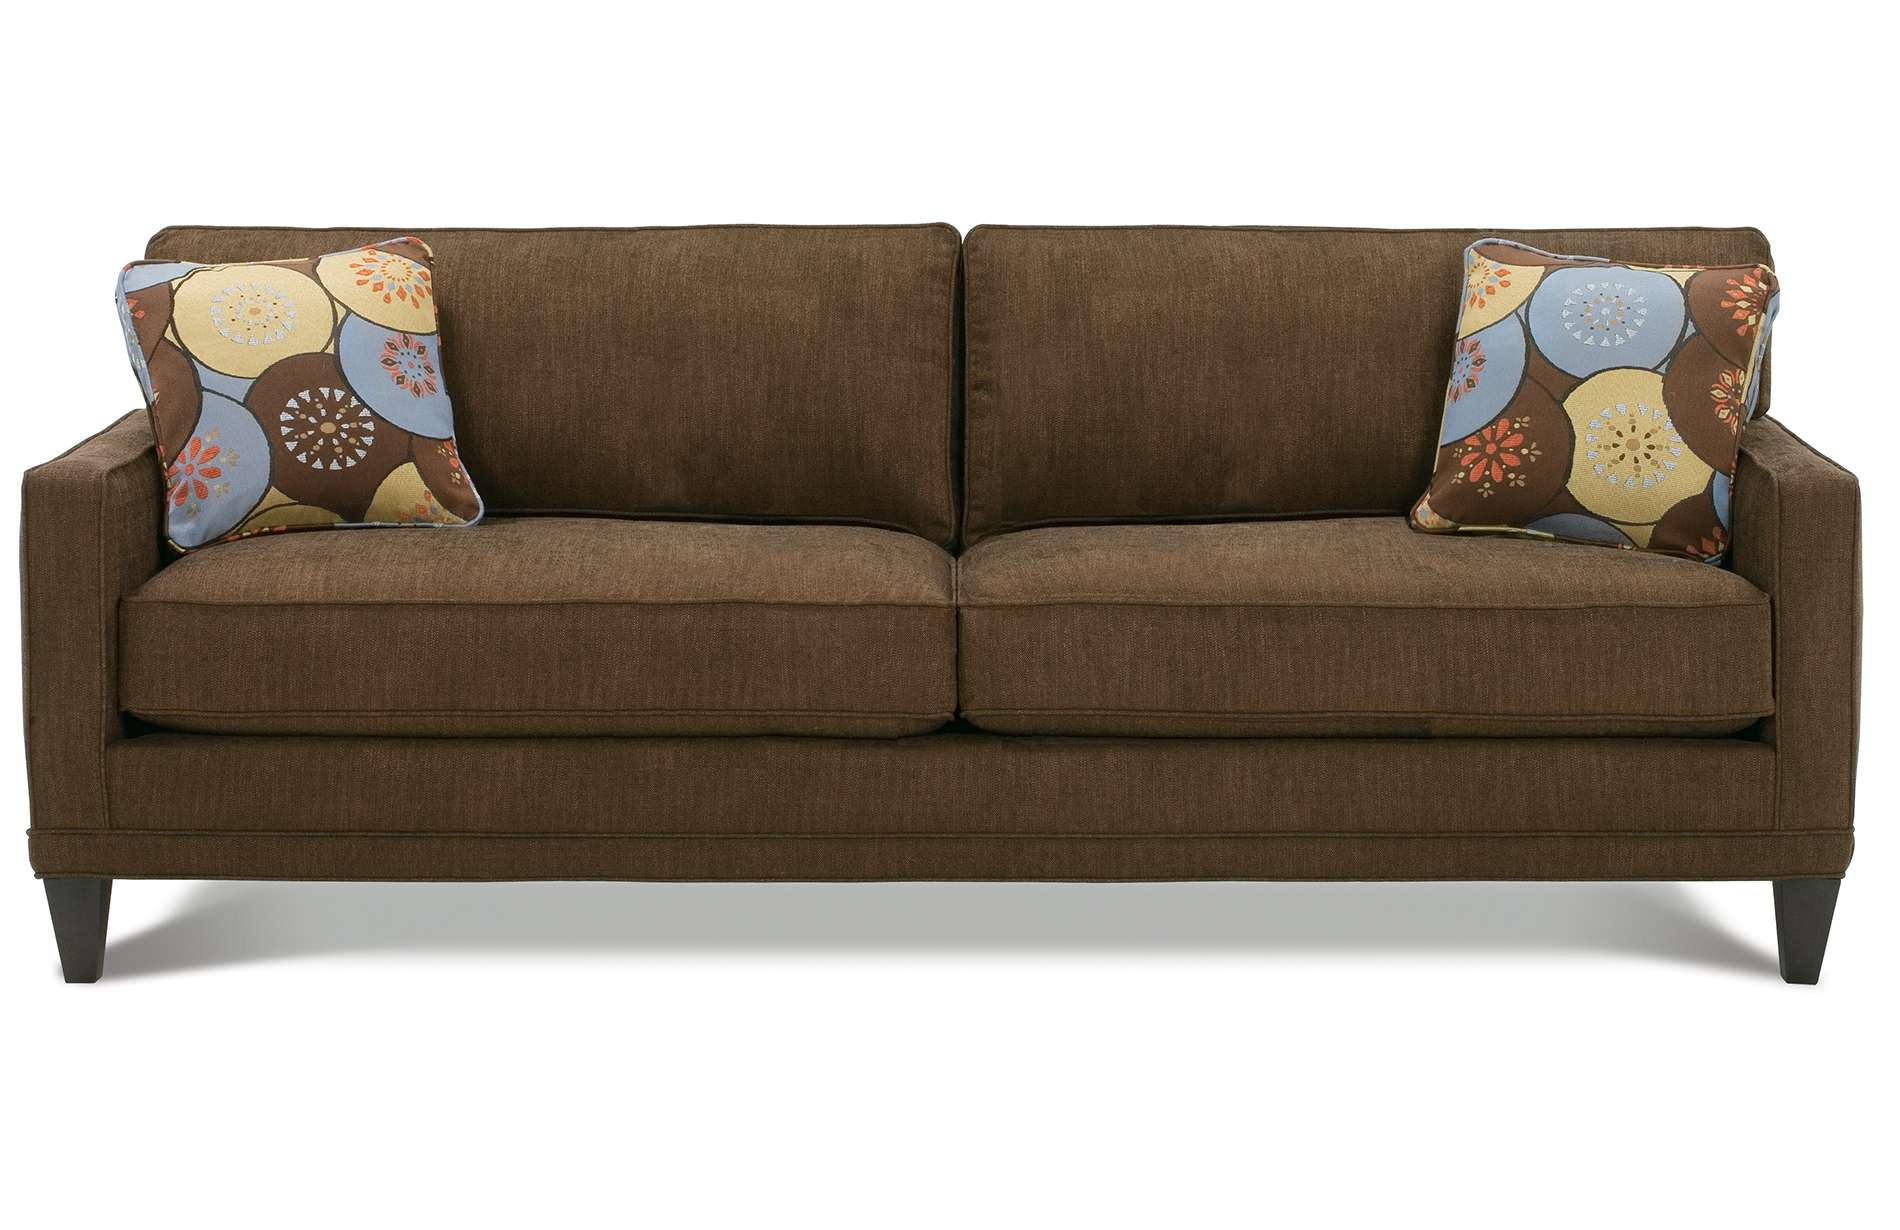 Townsend Sofa, starting at $1699